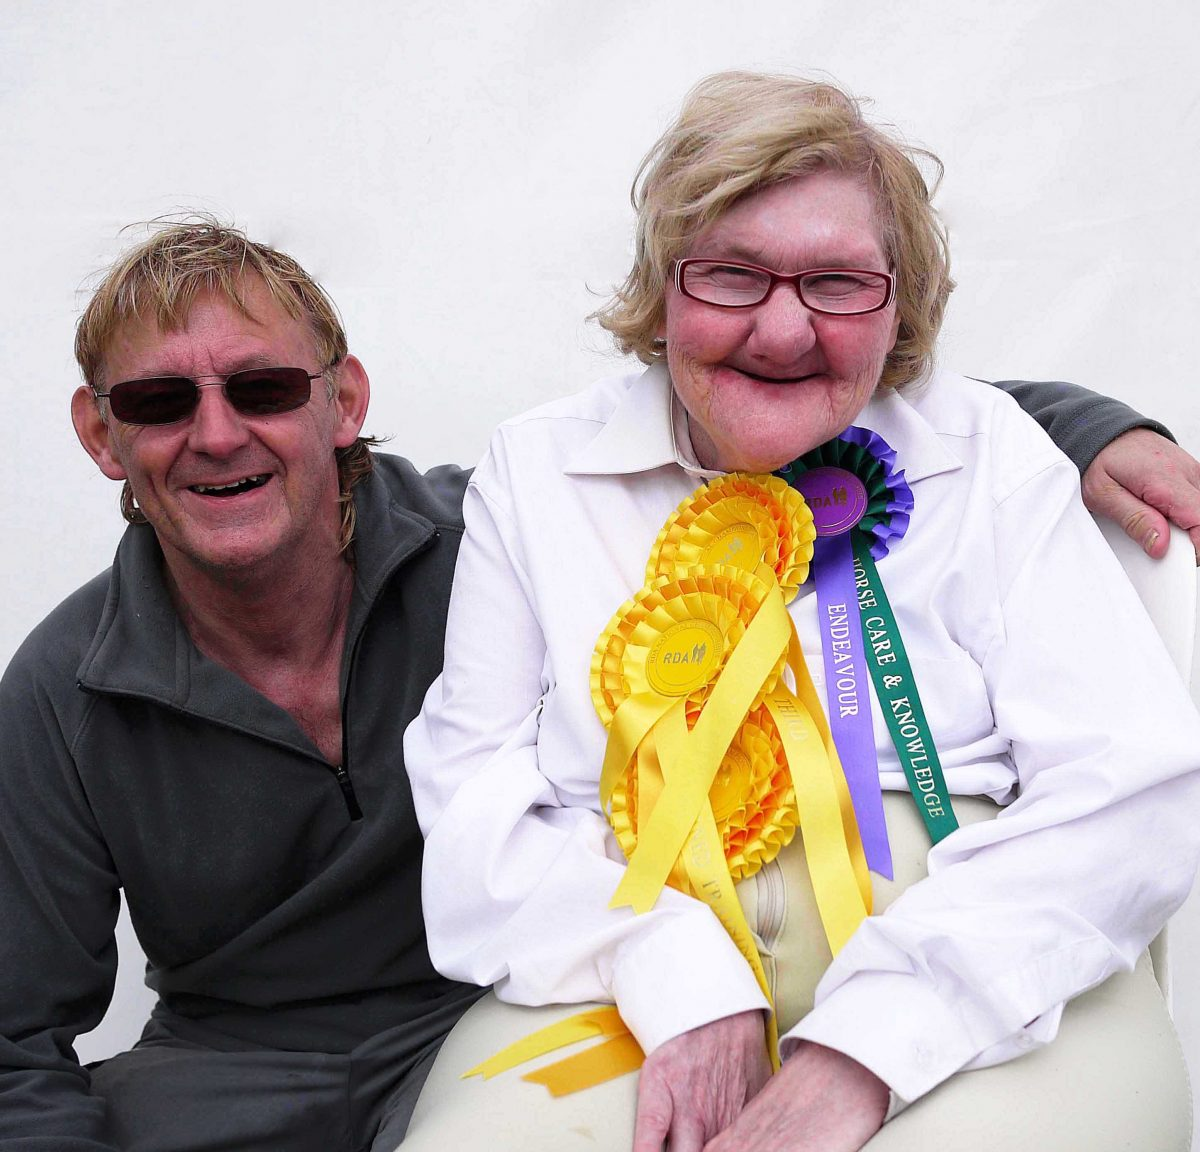 Barry and Ann celebrate her achievments after a competition